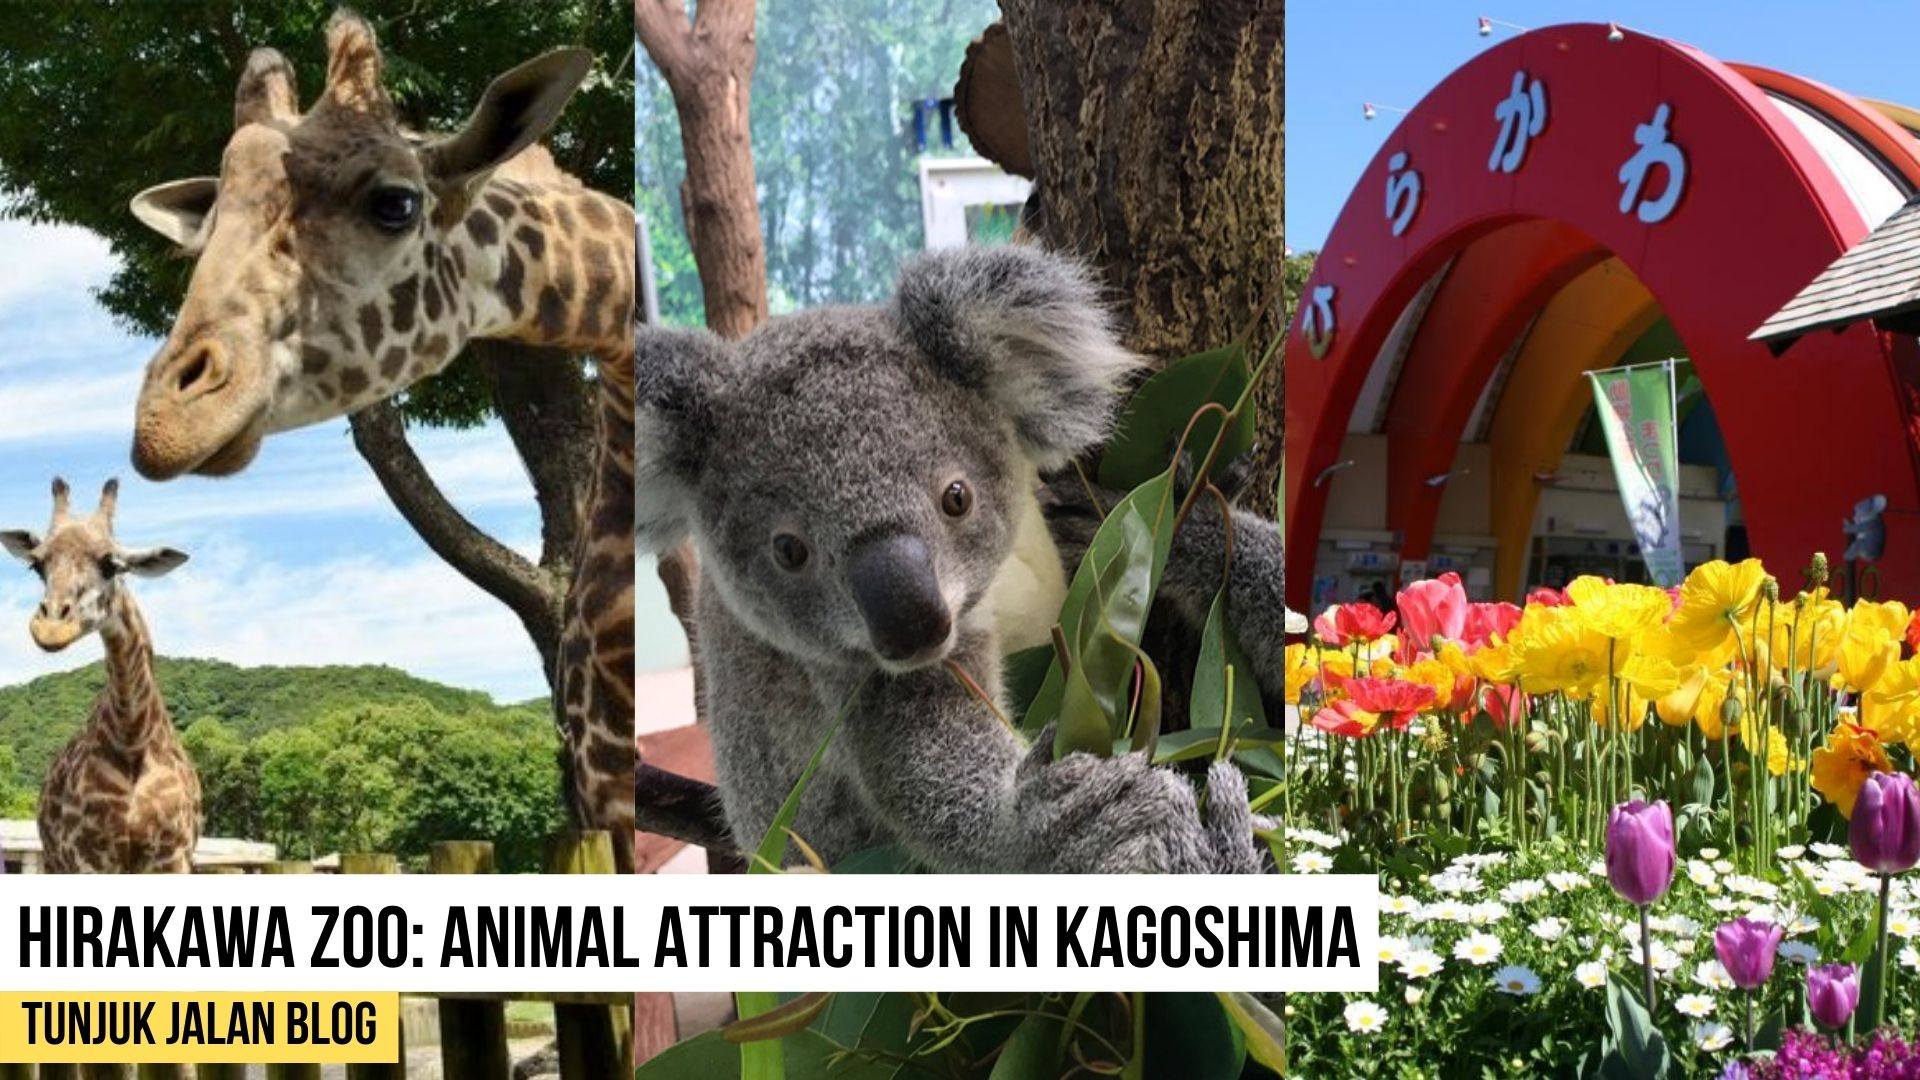 Hirakawa Zoo: Animal Attraction in Kagoshima